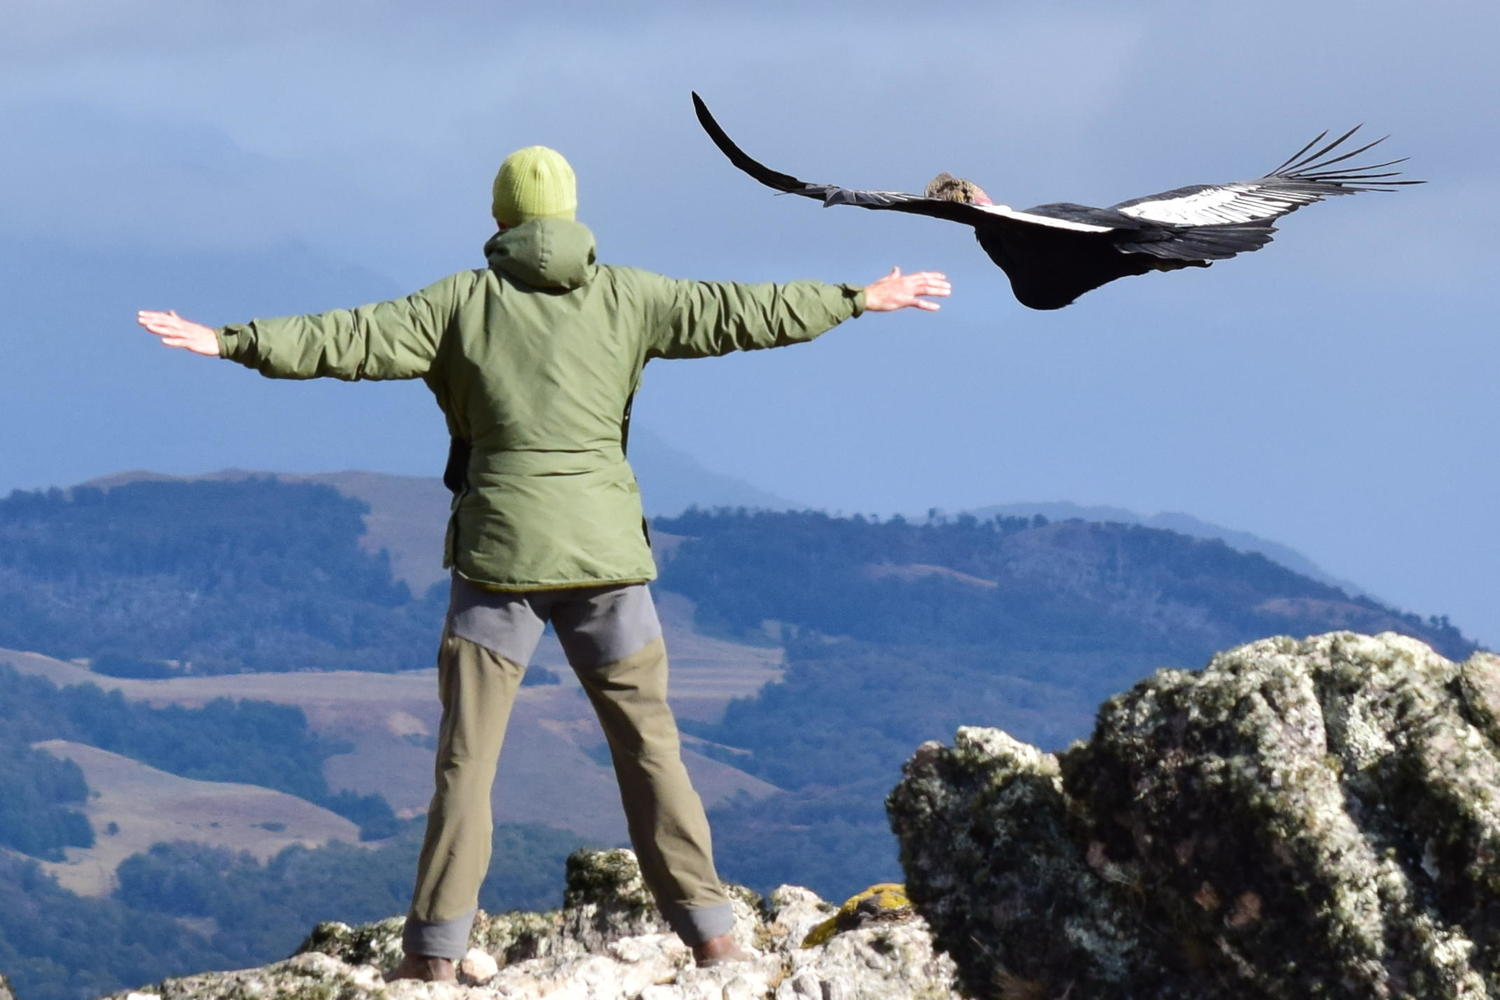 Condor rookery at Patagonian estancia on Carretera Austral